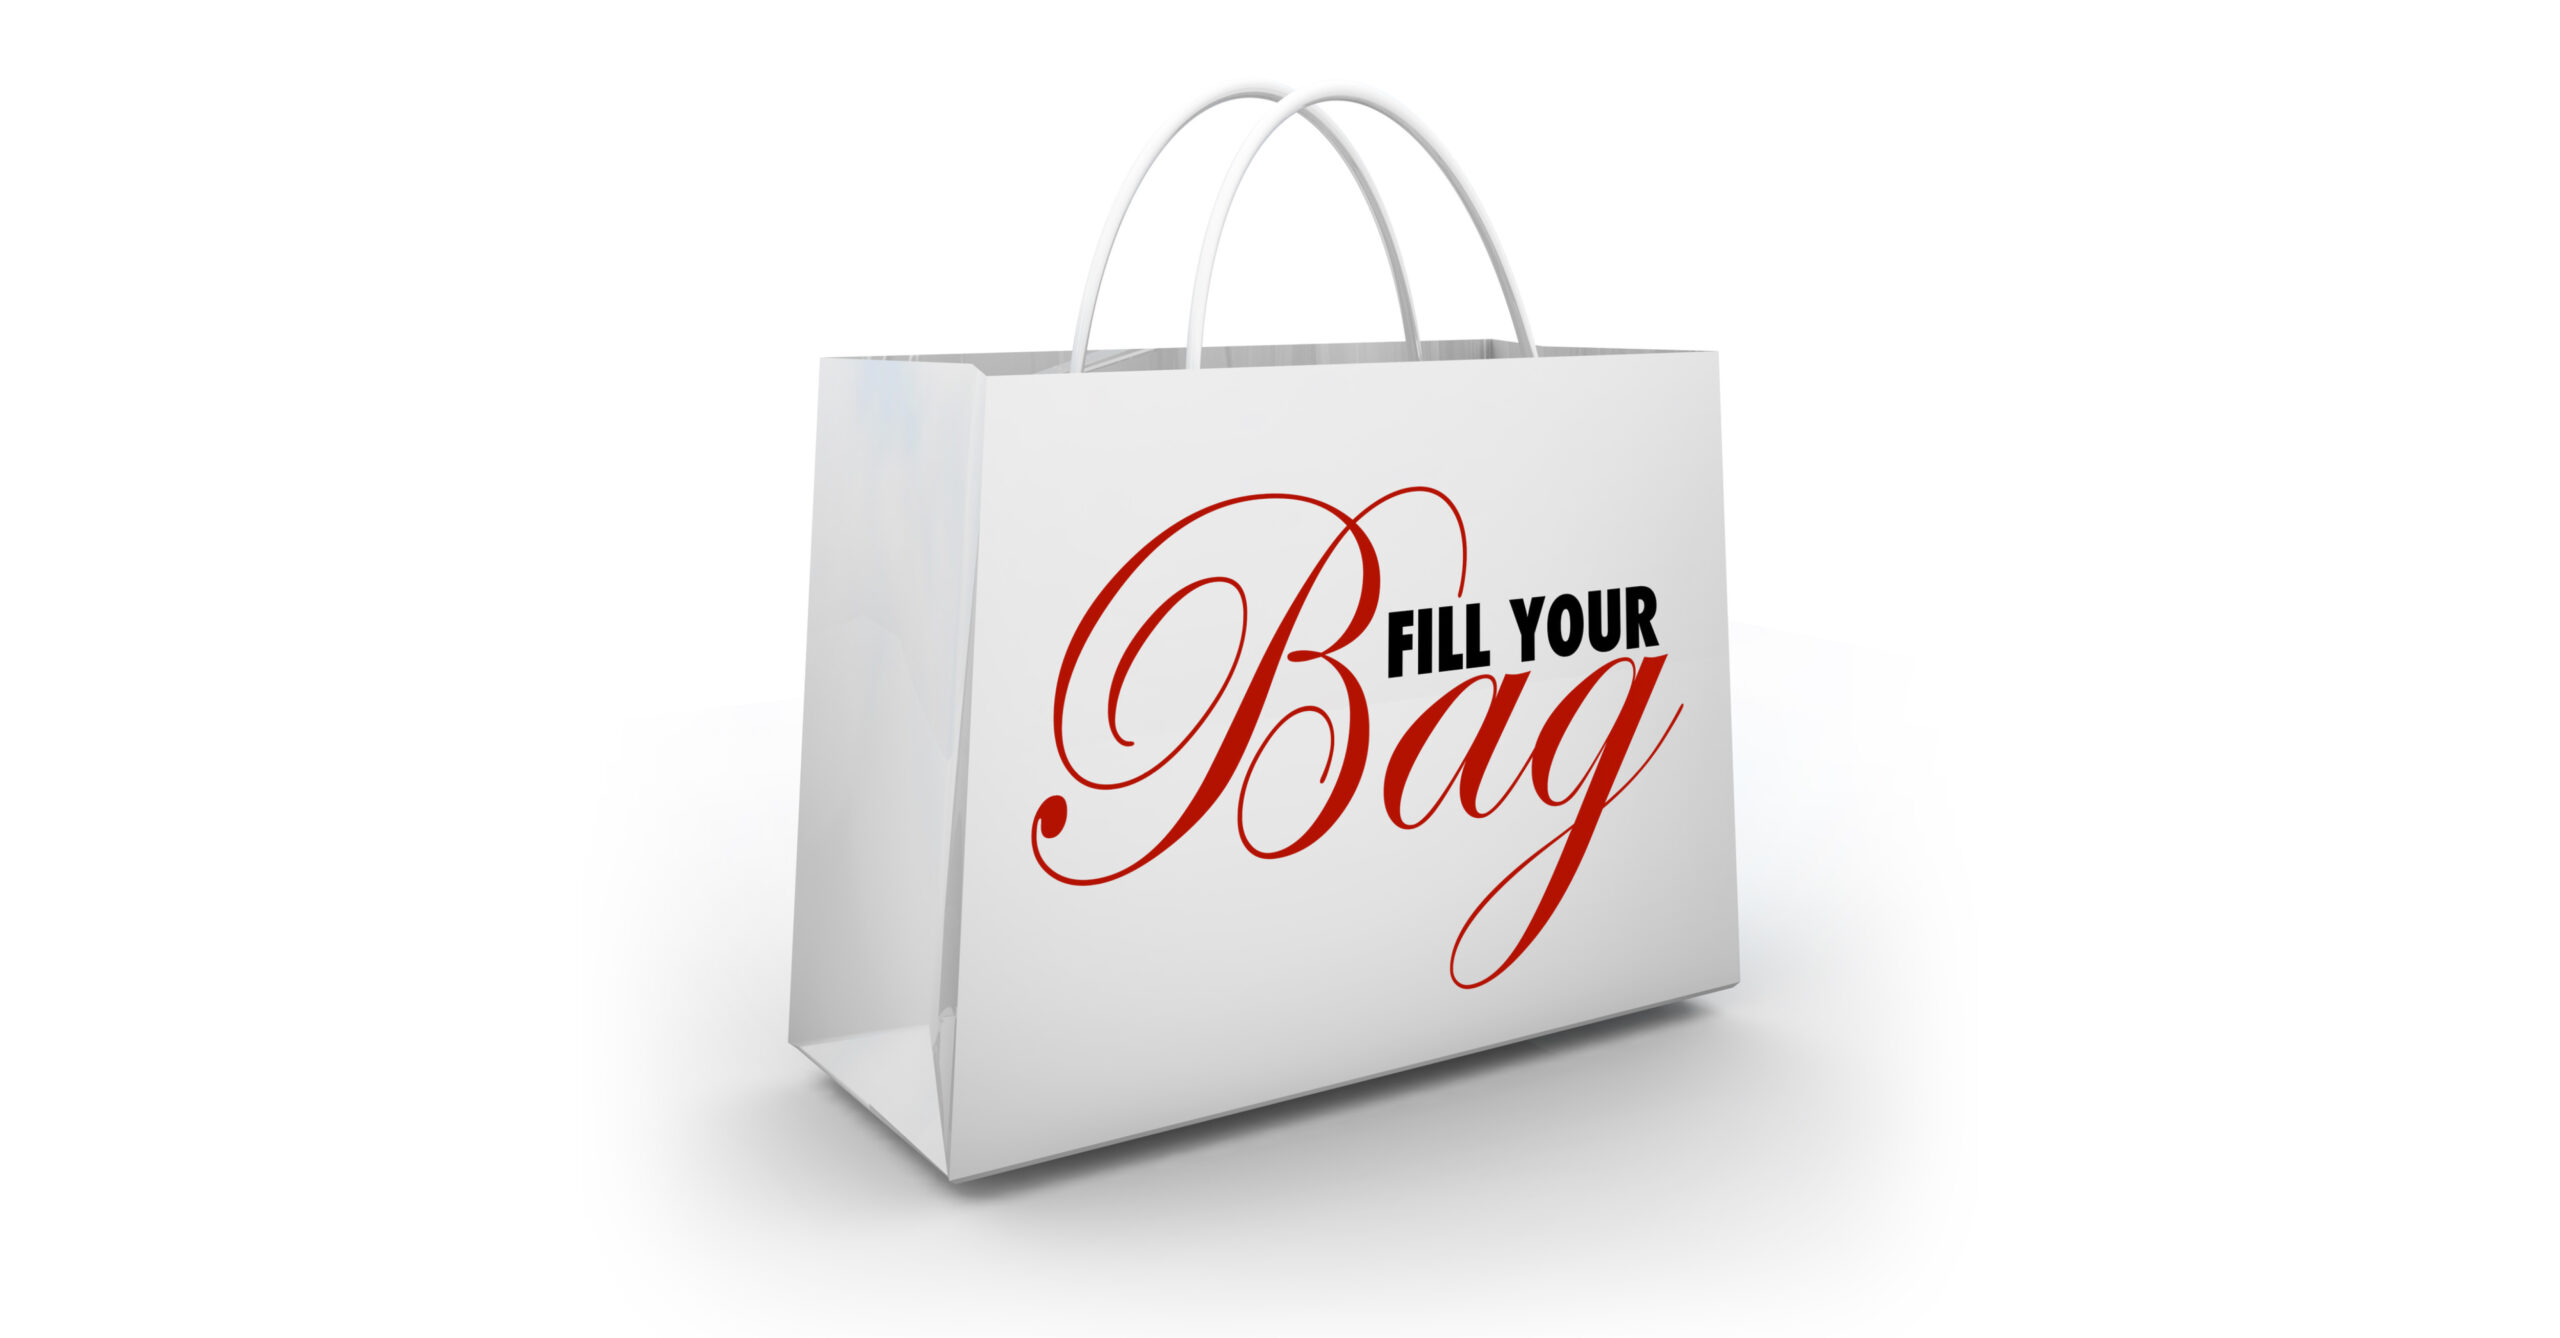 3 Creative Ways To Advertise Your Latest Sales Event